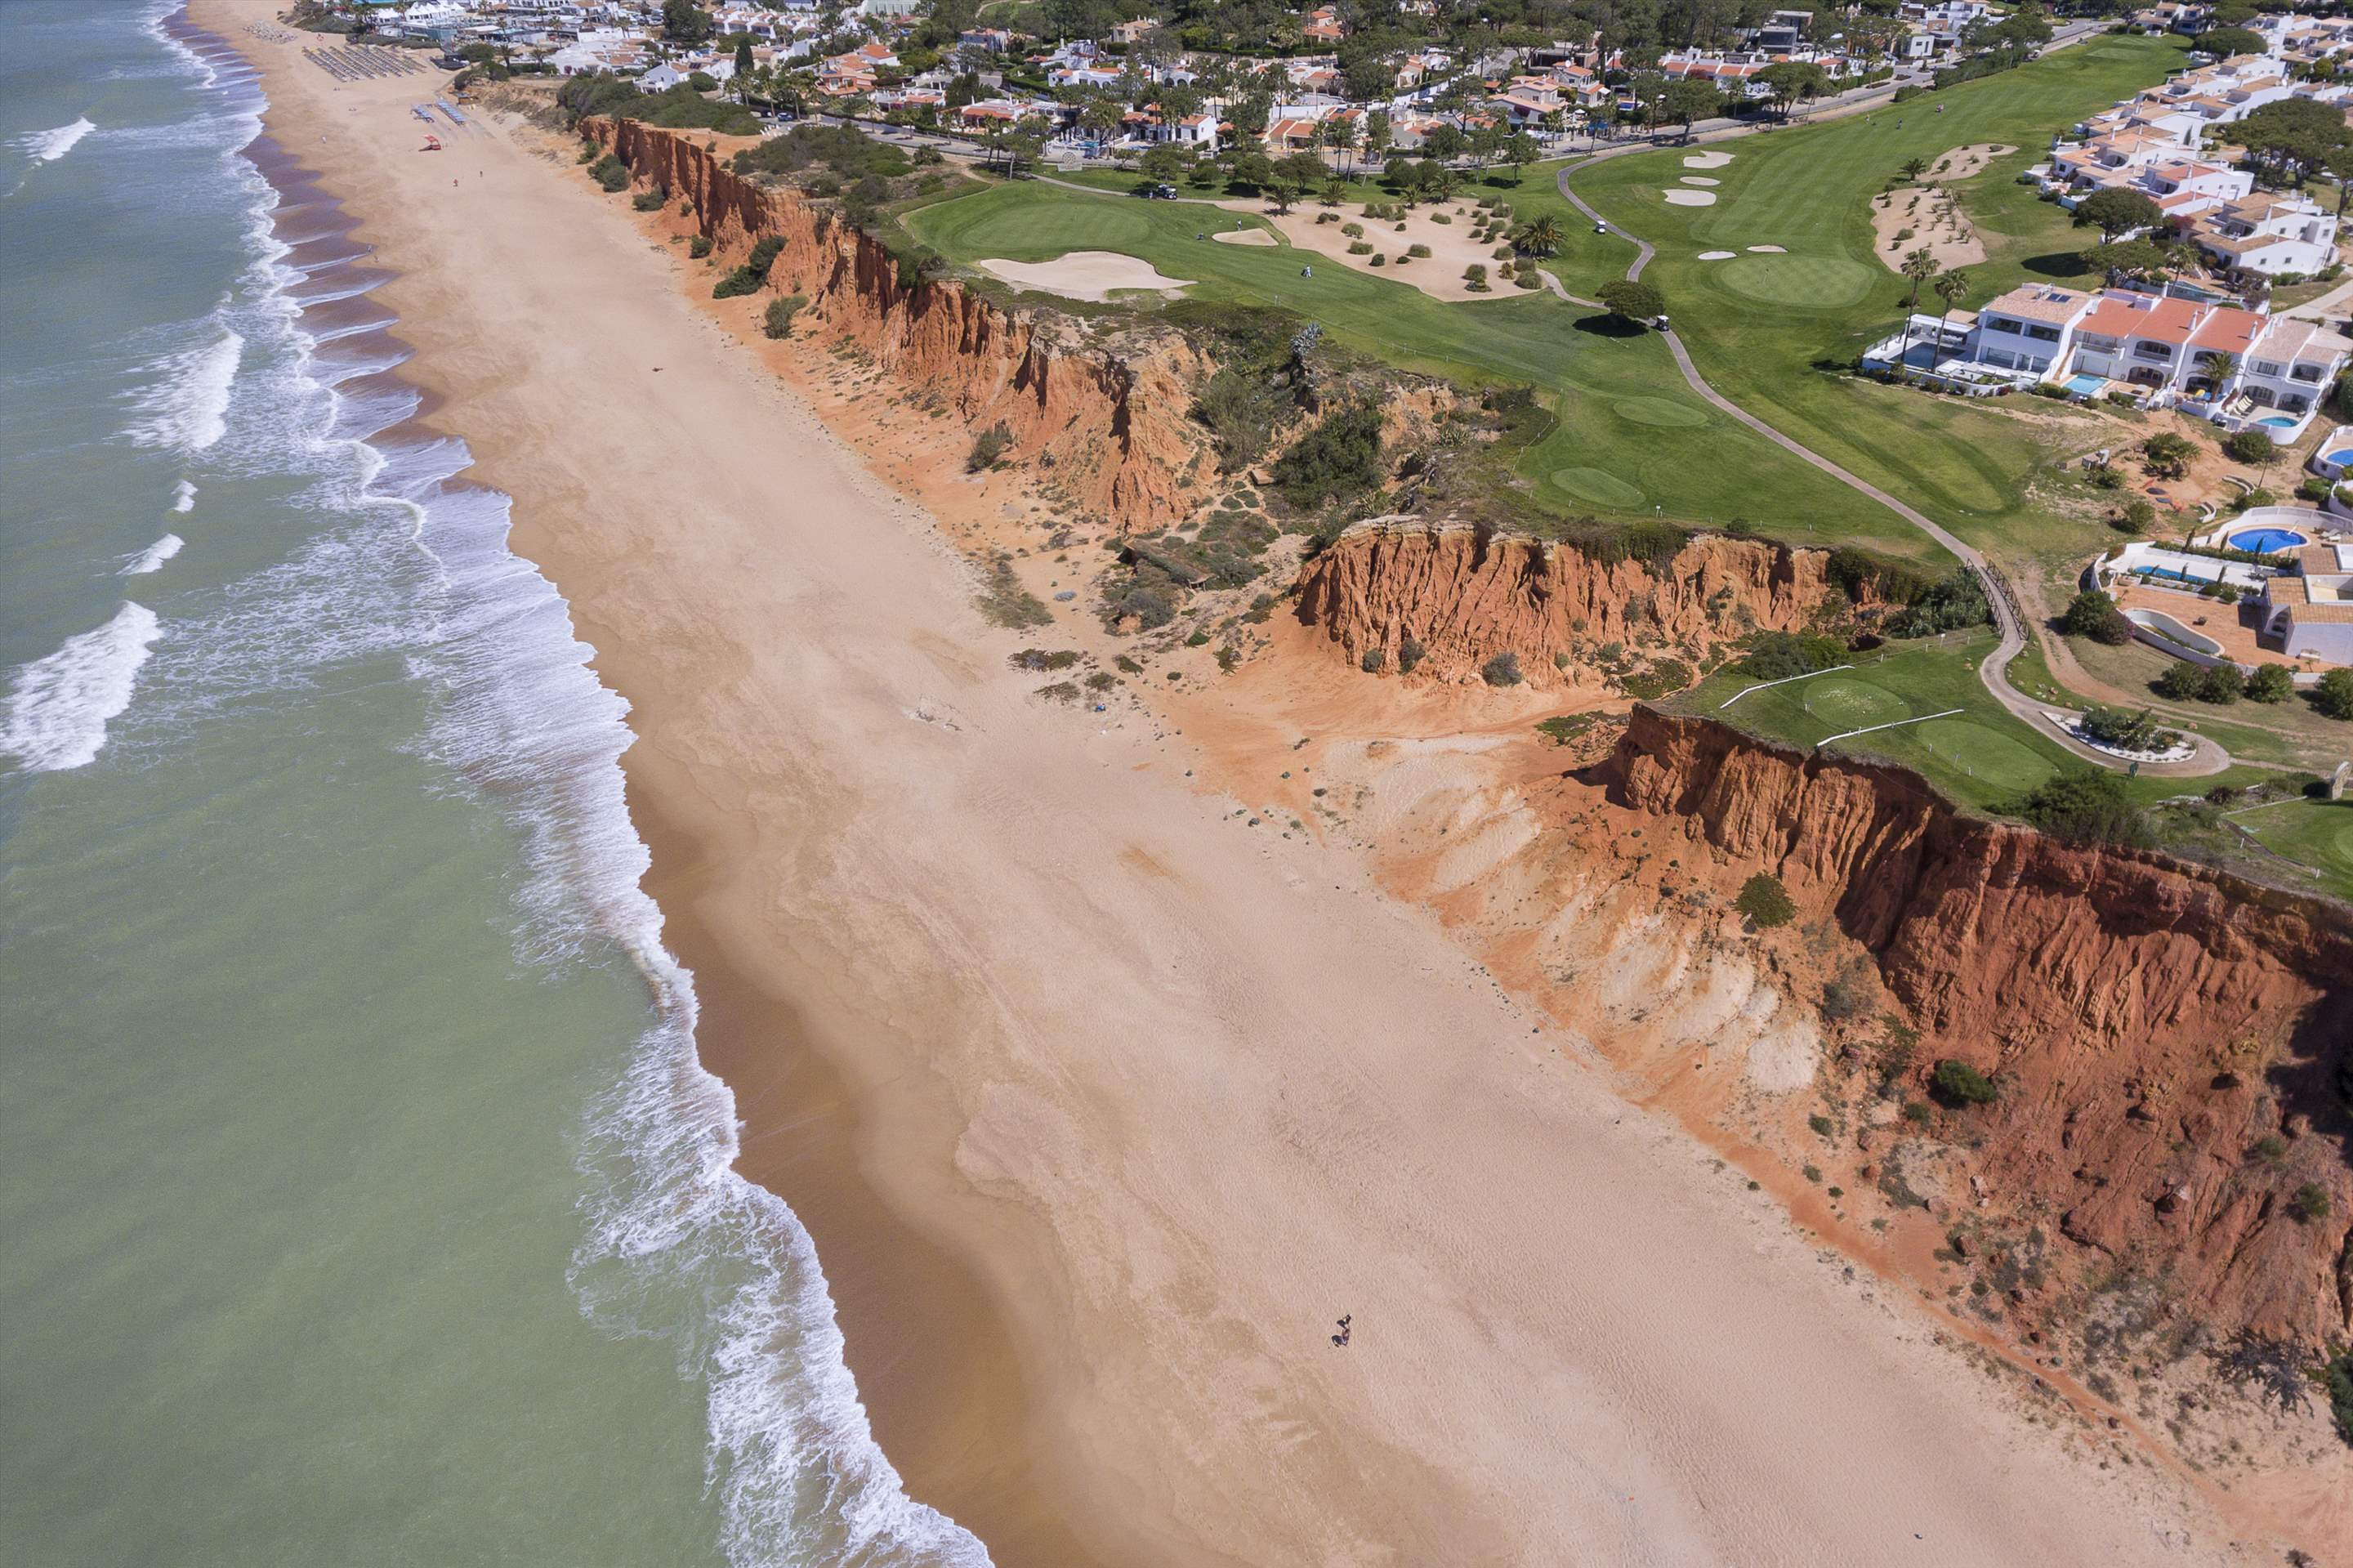 Villas Louisa, 3 bedroom, 3 bedroom villa in Vale do Lobo, Algarve Photo #32